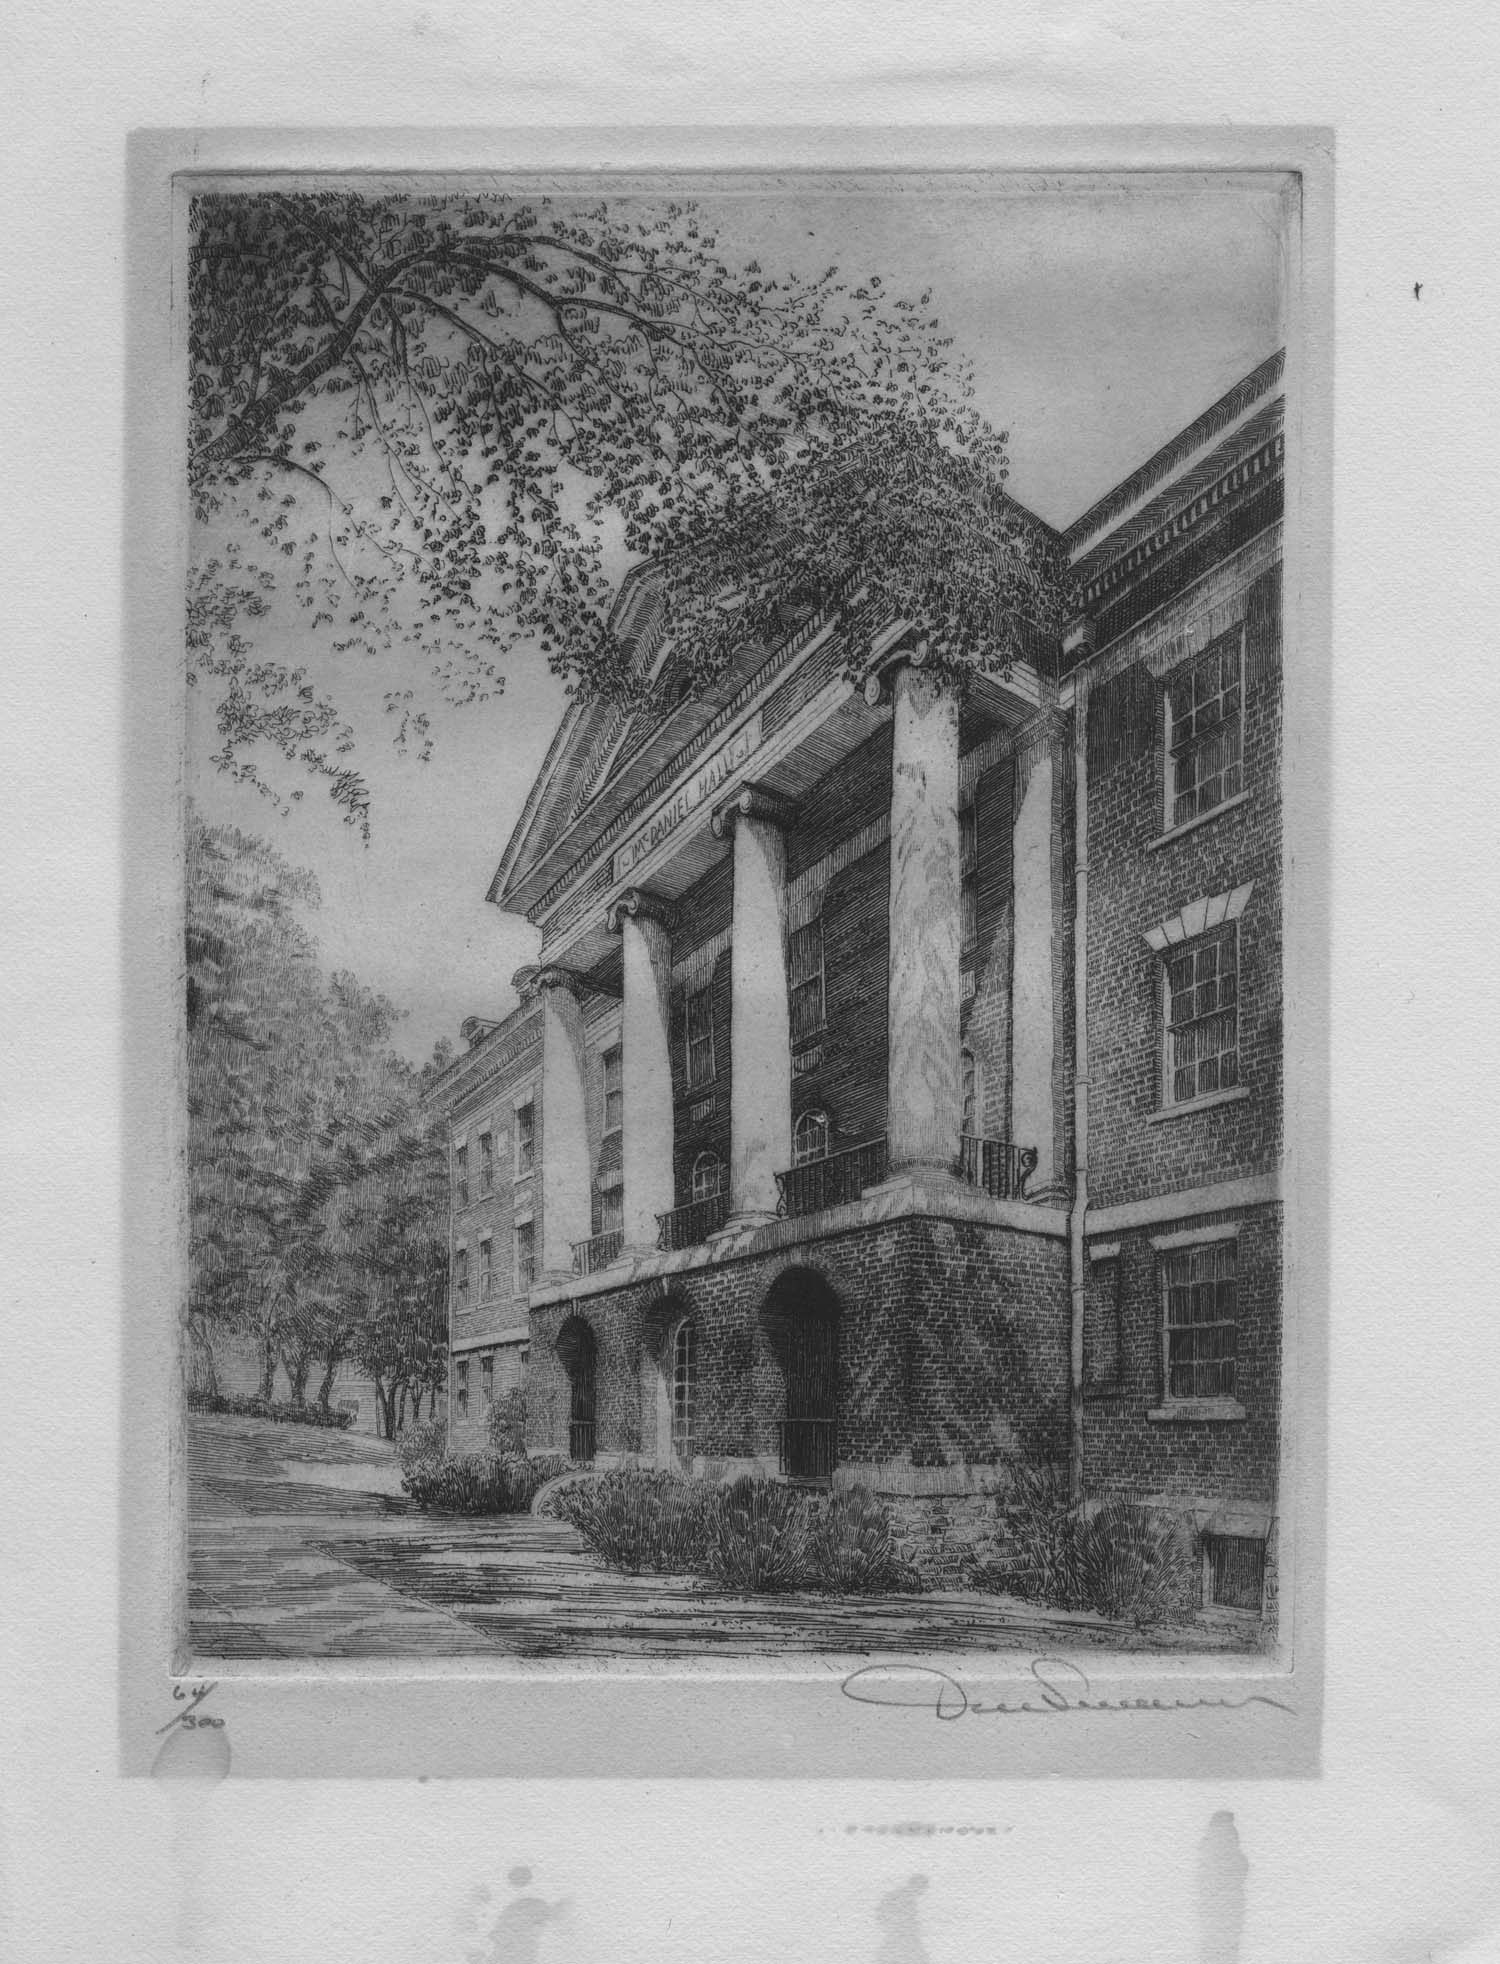 McDaniel Hall by Don Swann circa 1936